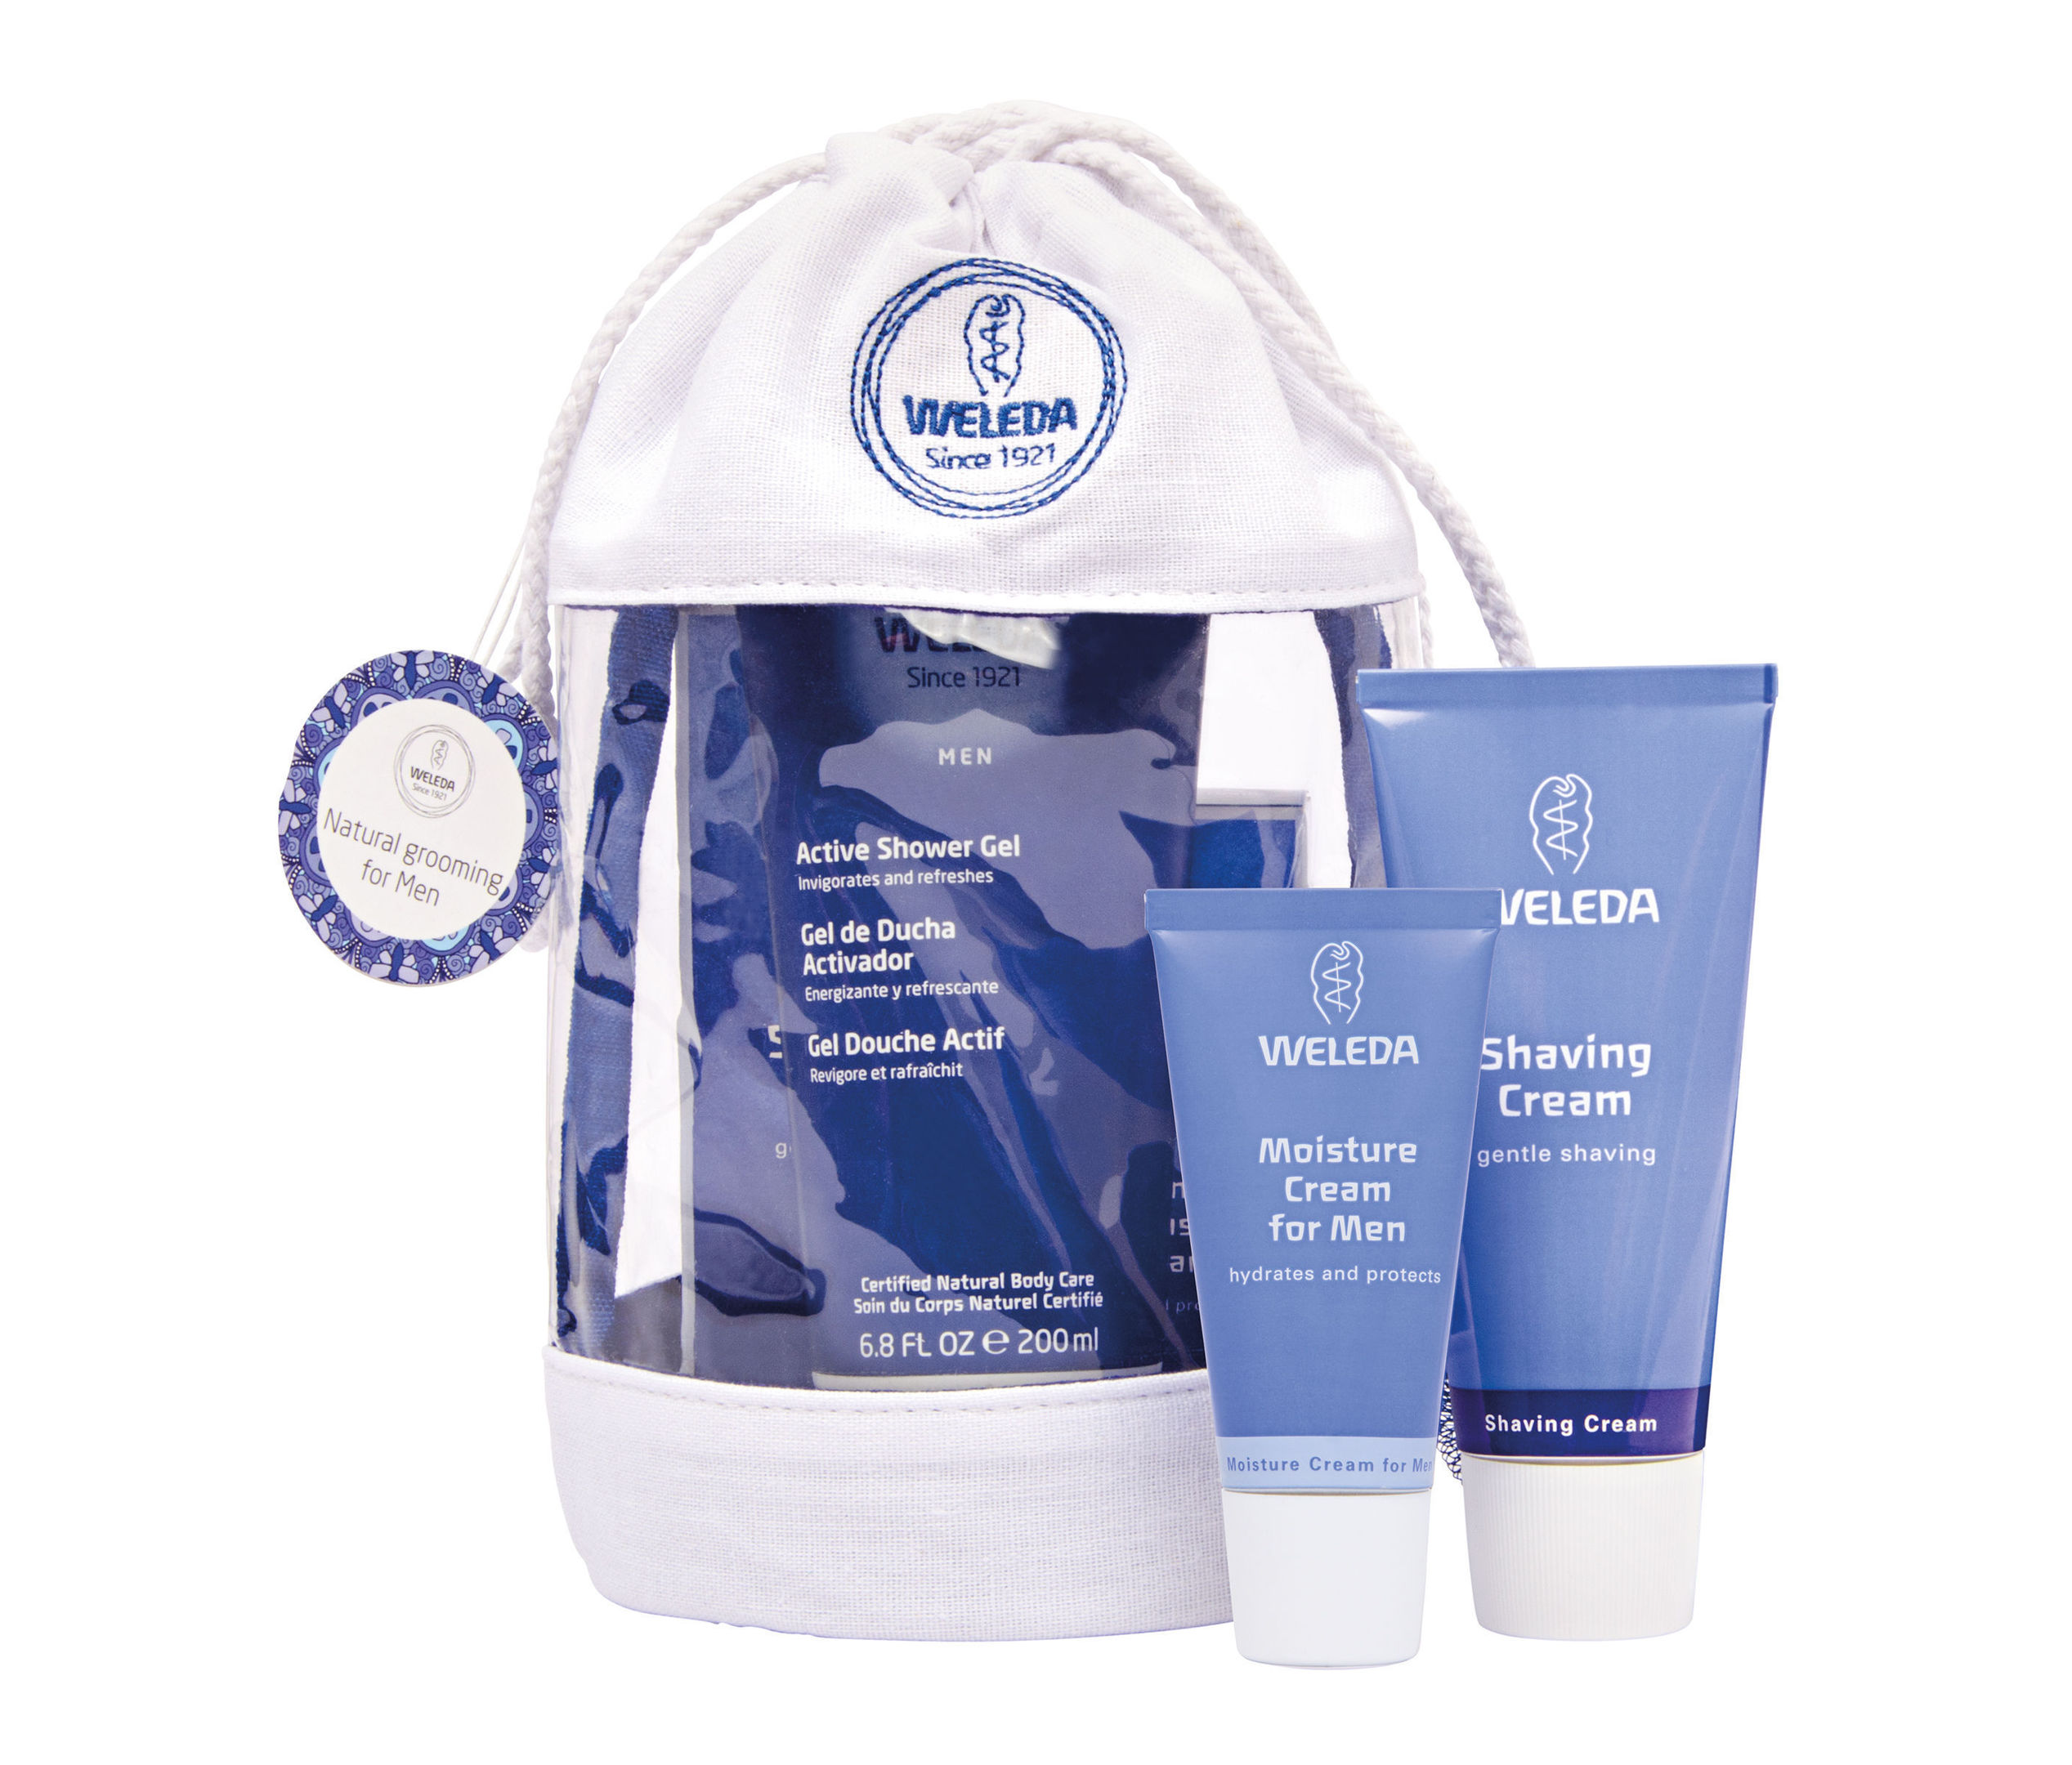 Weleda Mens Wash Bag Gift, available from weleda.co.uk. Picture credit: PA Photo/Handout.